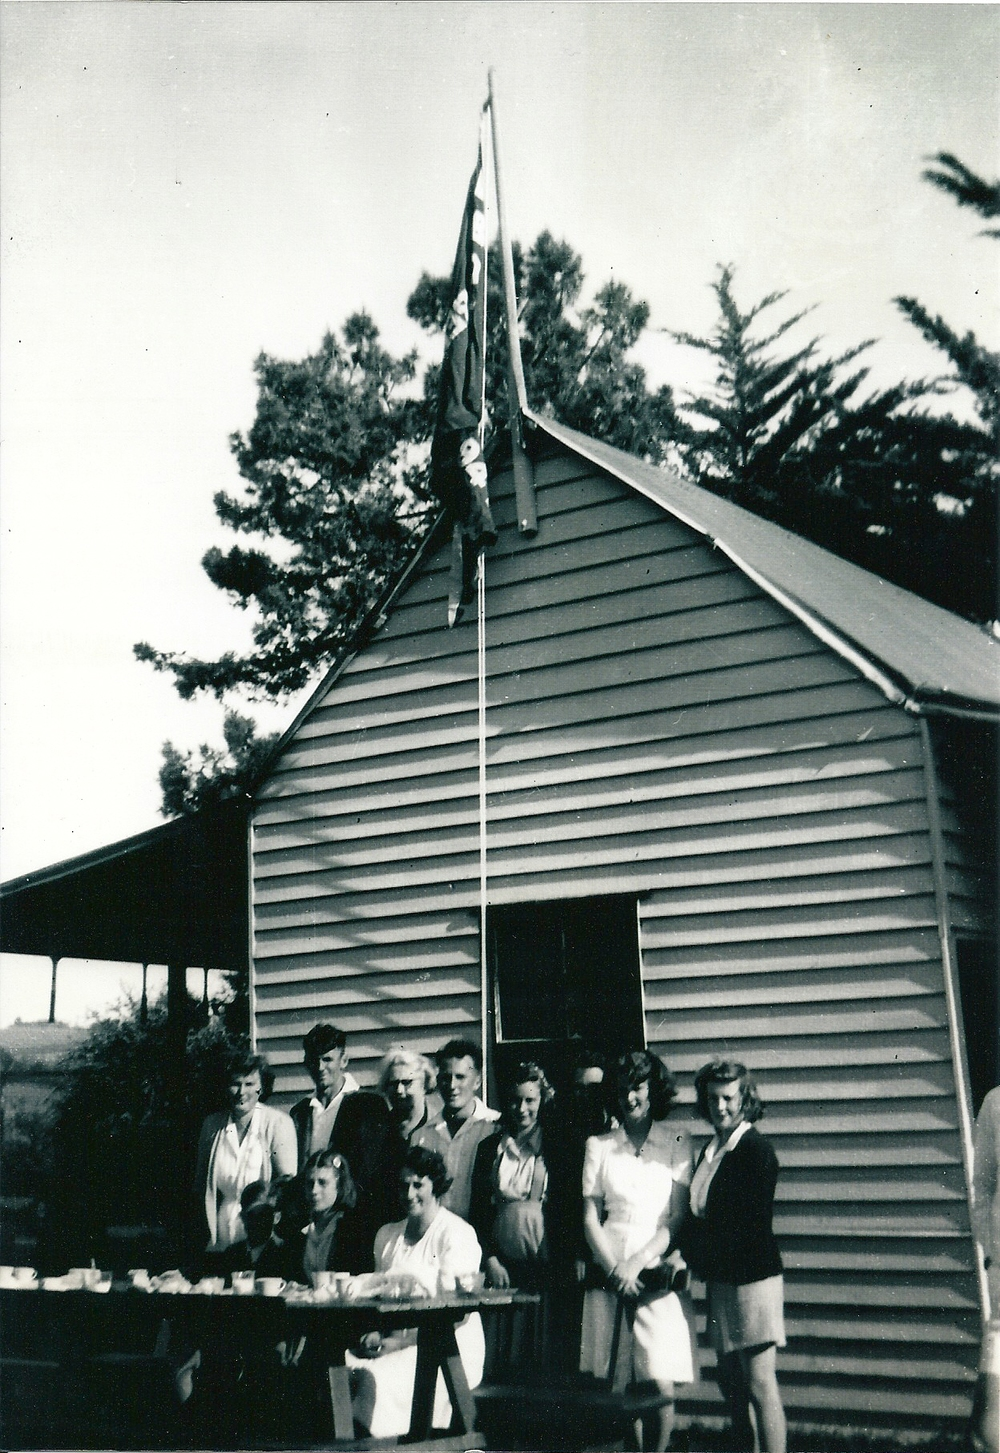 The old pavilion at Narre Warren North Tennis courts about 1949  Standing: Mary Asling, Ray Hart, Alice Randle, Tony Lukies, Merle Ackland, Doff Asling, Pat Asling, Dorothy Harries  Seated at front: Lesley Hart, Bev Ackland, Leila Robinson